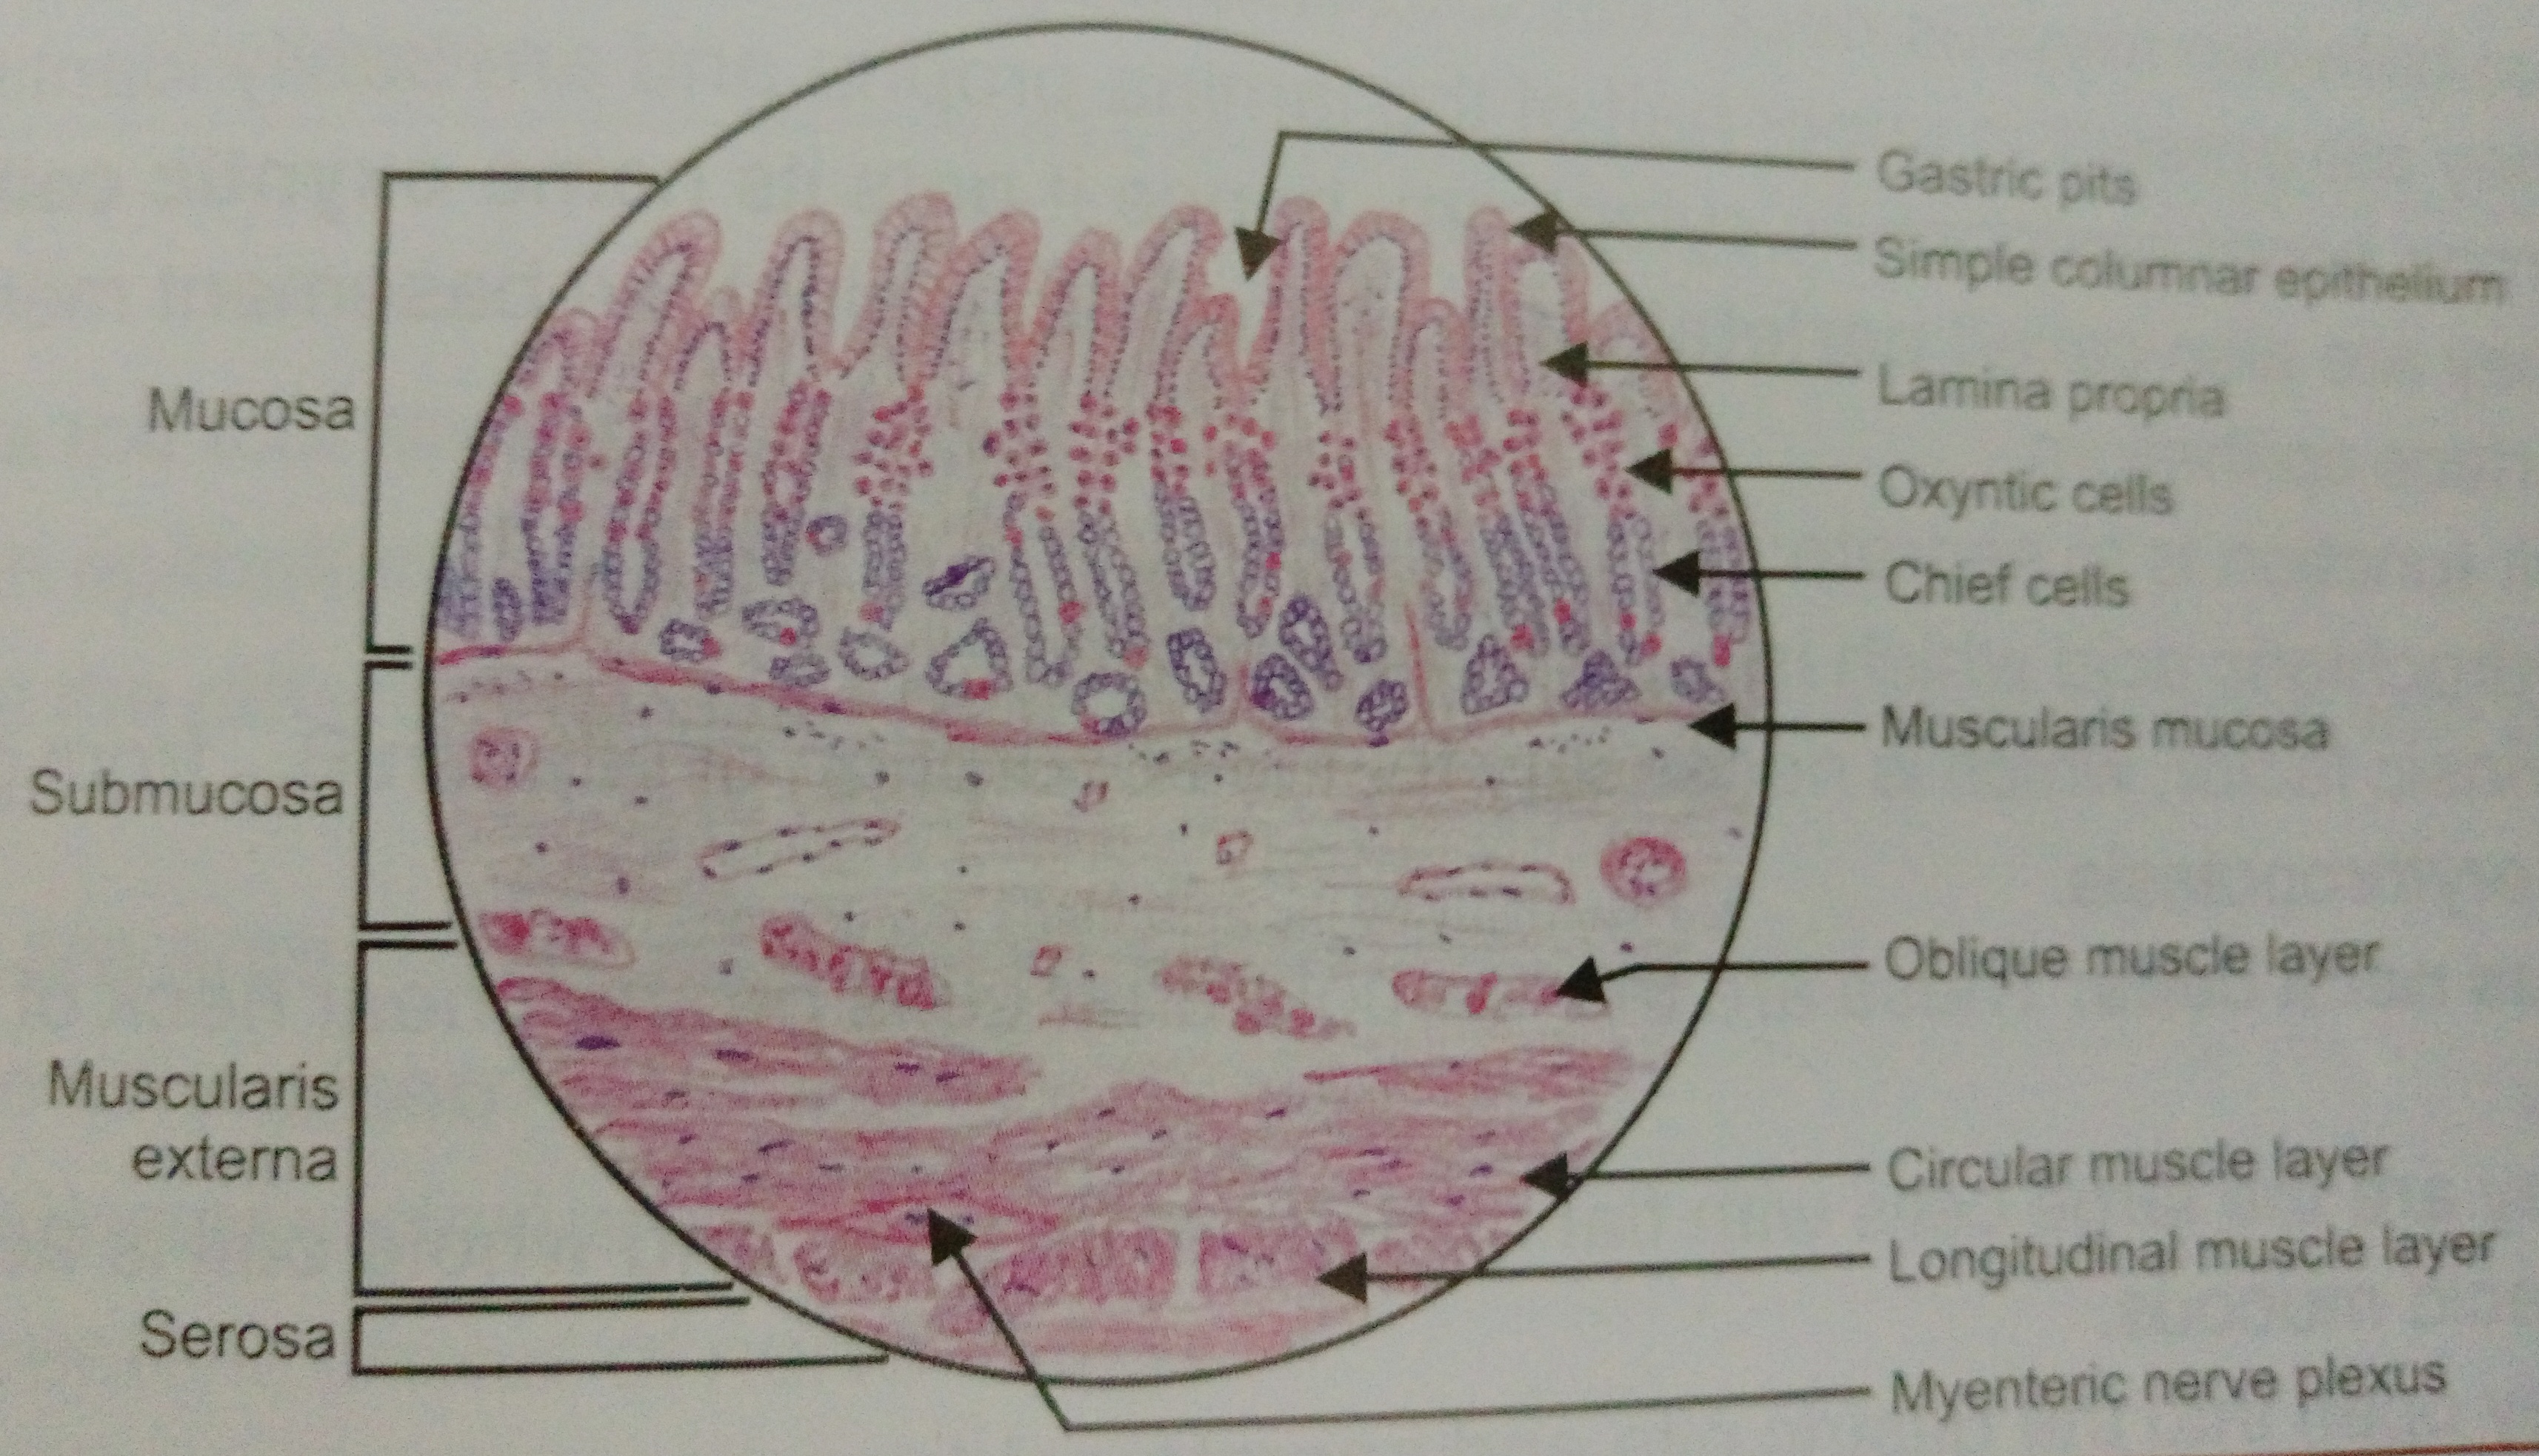 hight resolution of histology of fundus stomach manage your time 1996 posterior fundus uterus diagram of fundus